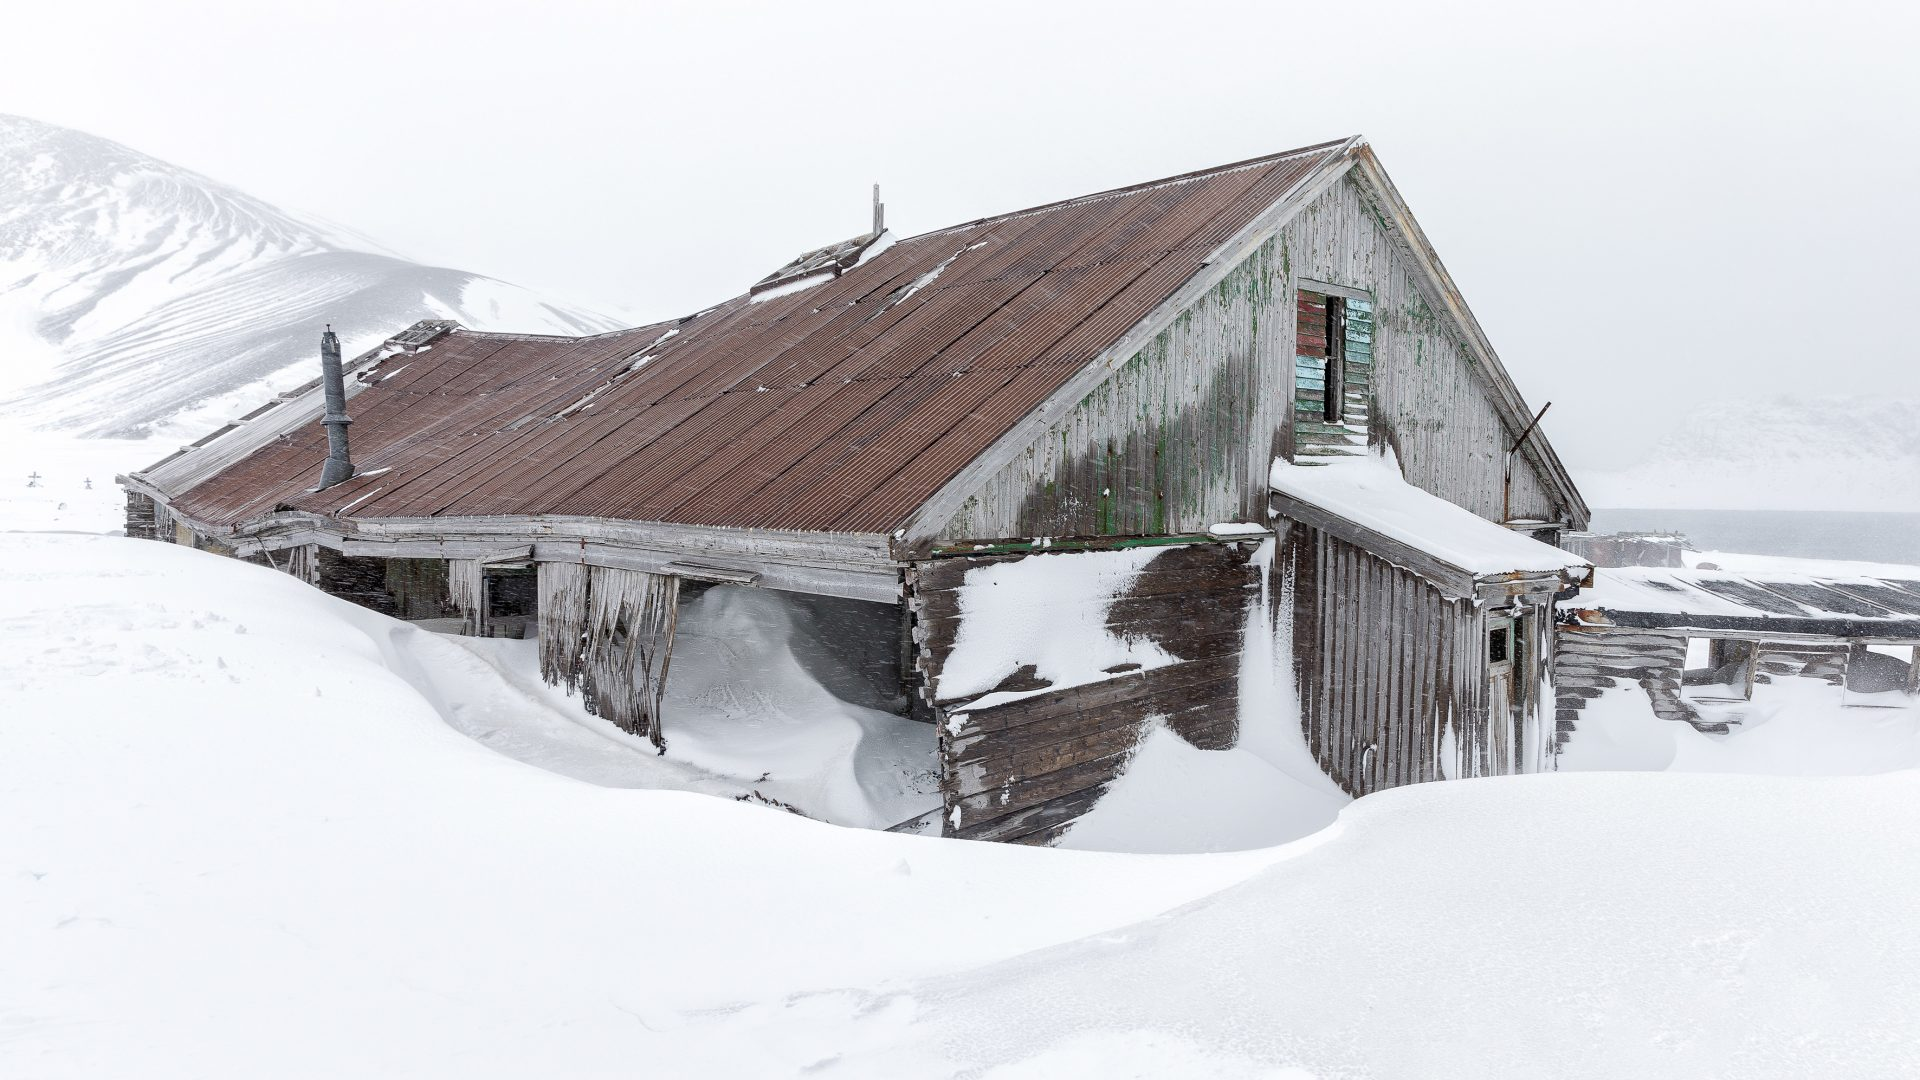 An abandoned building at an old whaling station is surrounded by snow.